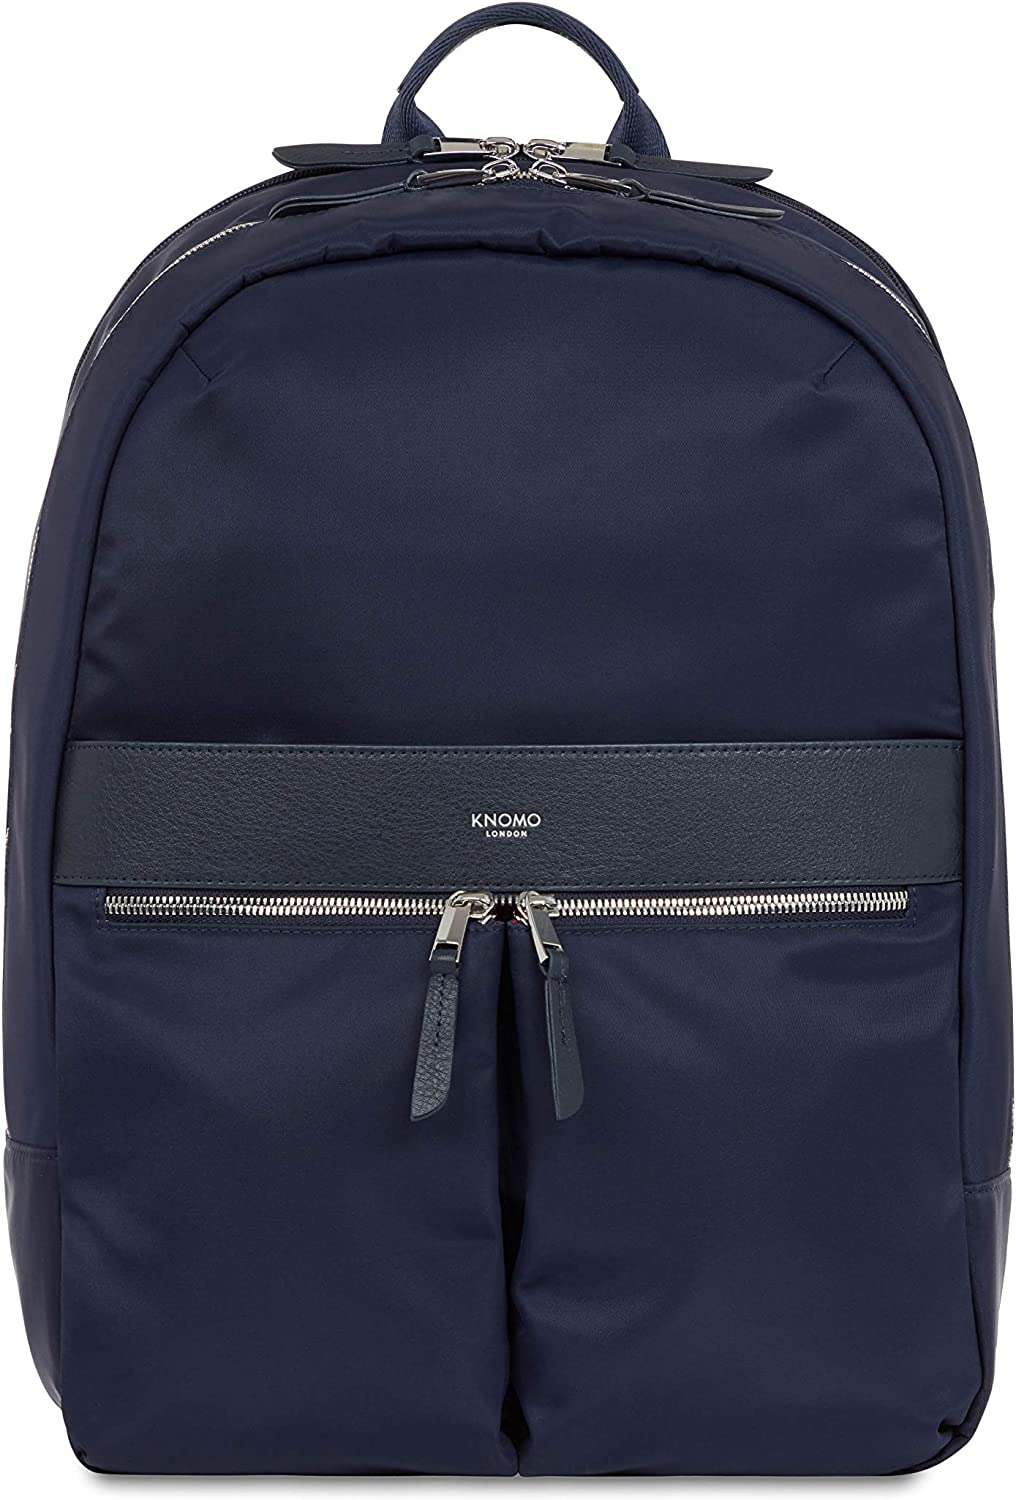 Knomo Luggage Women's Backpack, Dark Navy, One Size